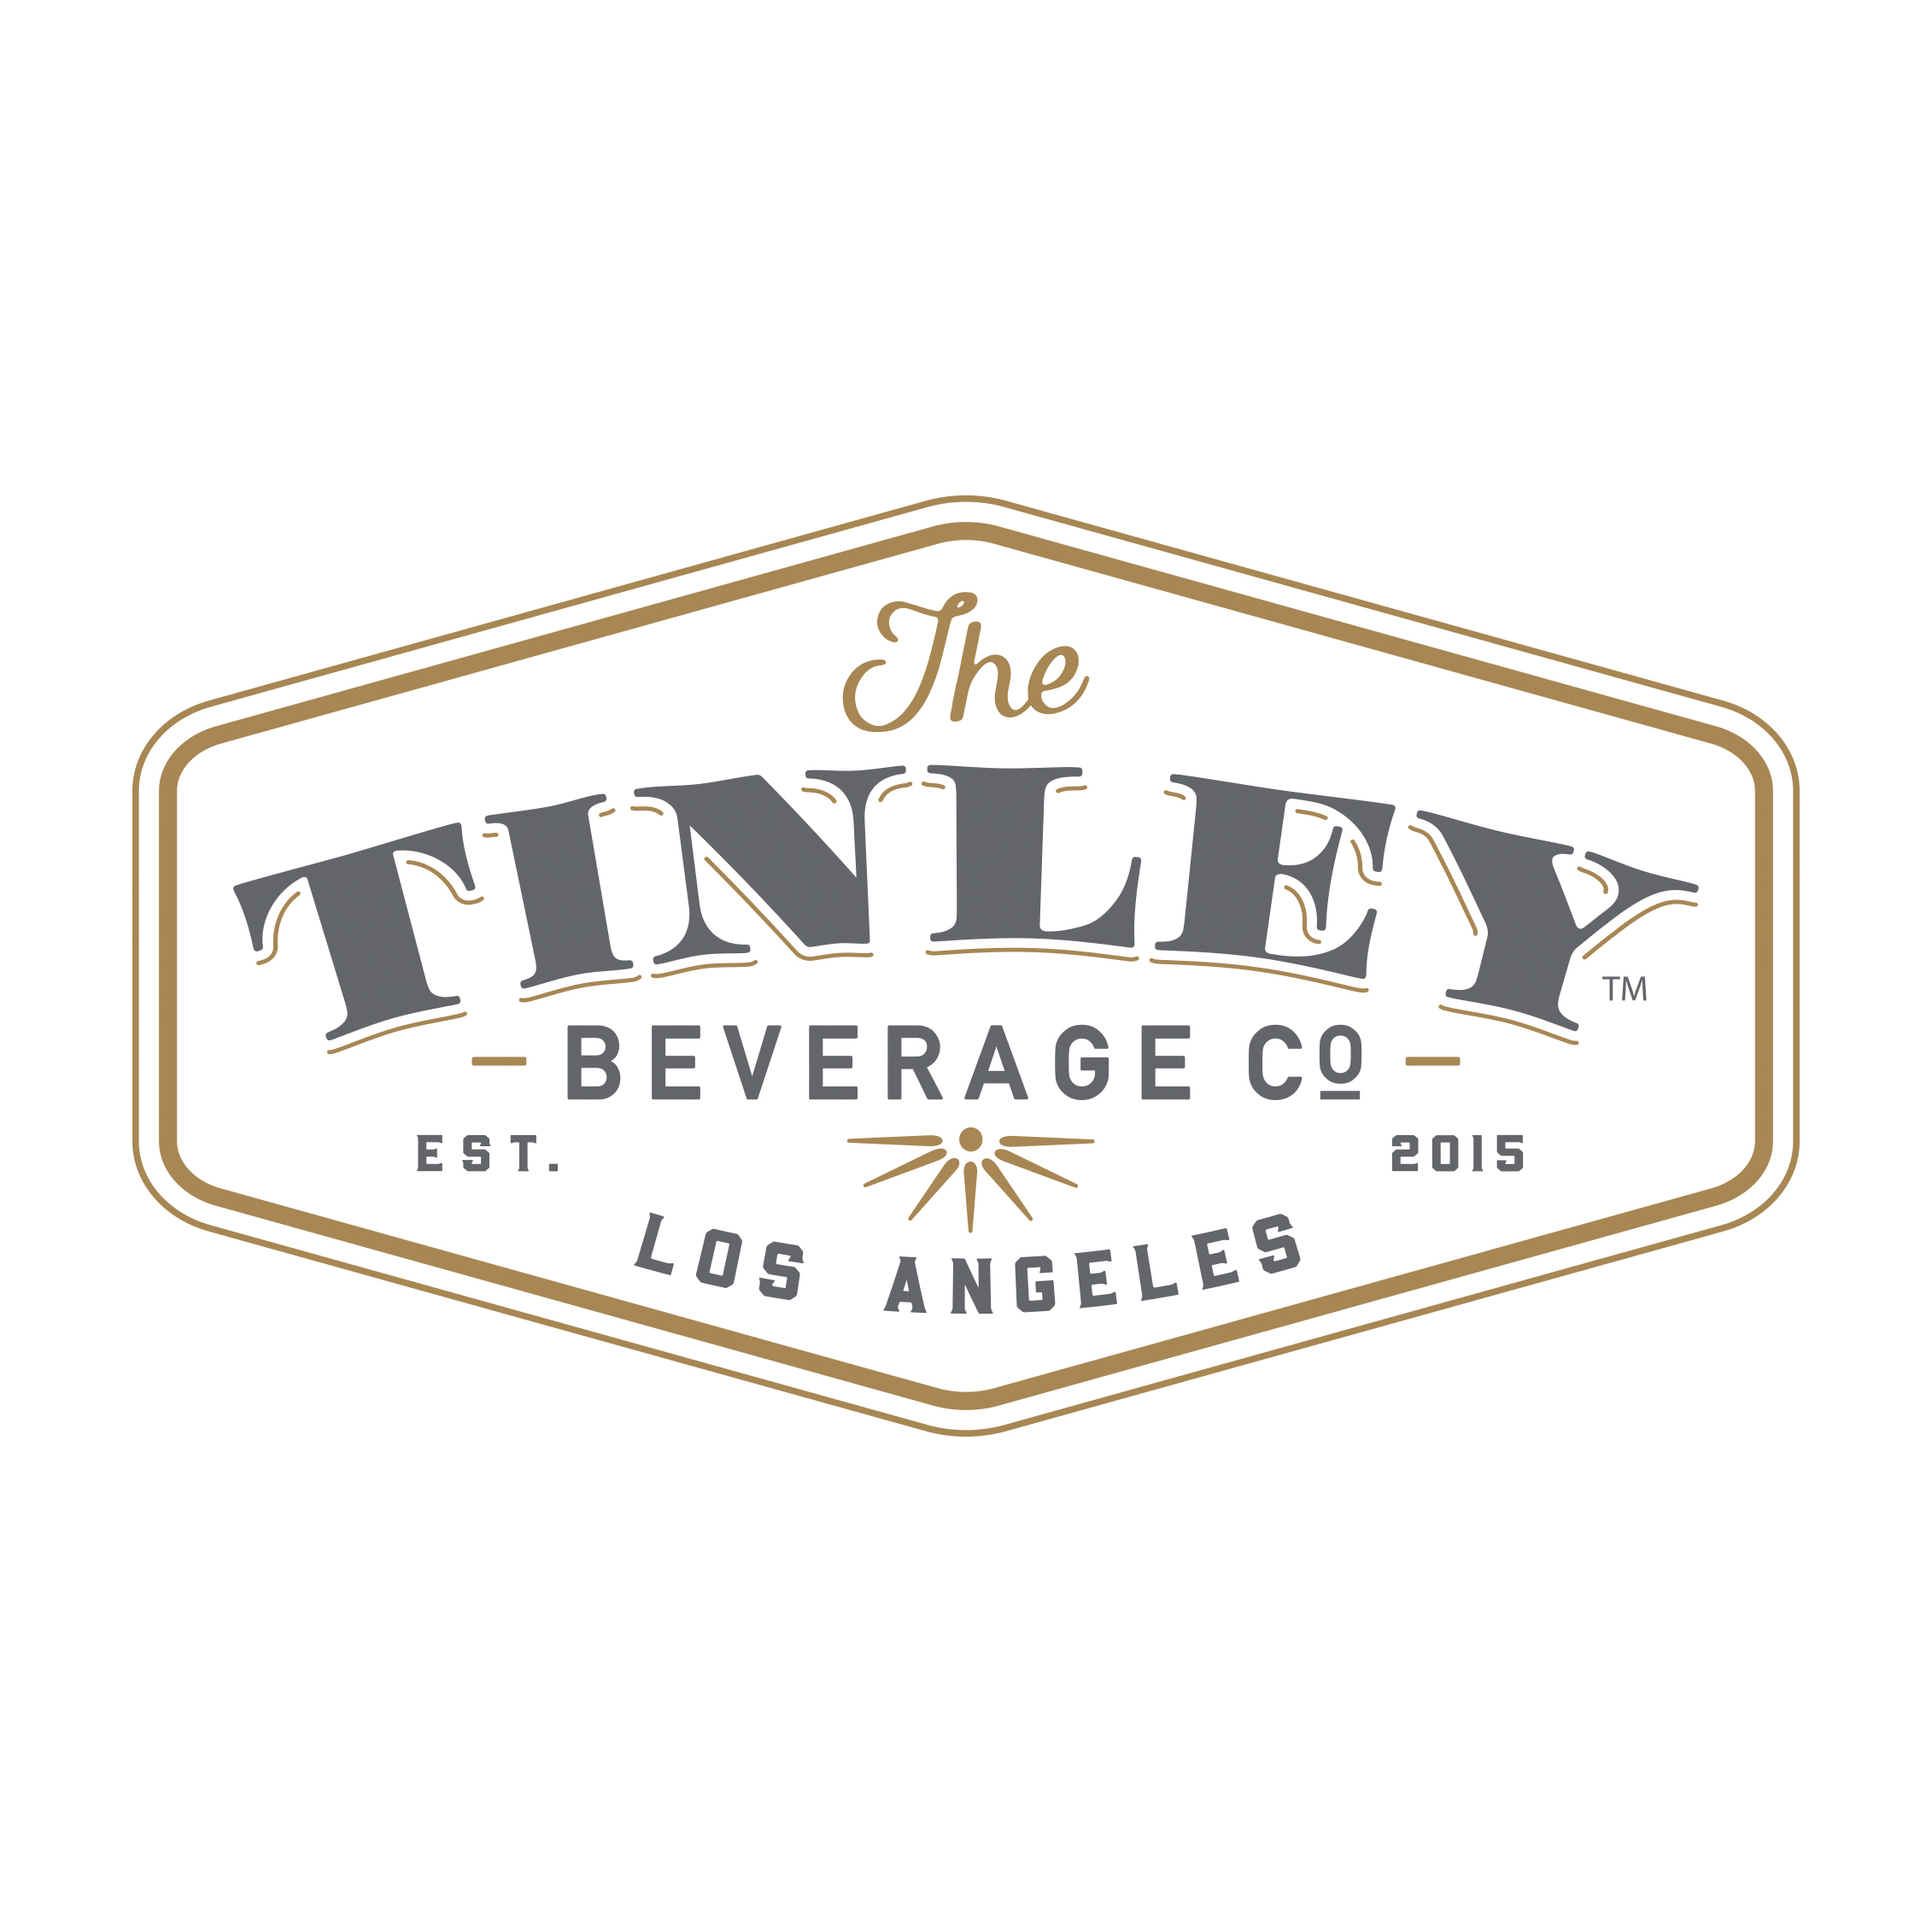 tinley logo_color_square NEW.JPG